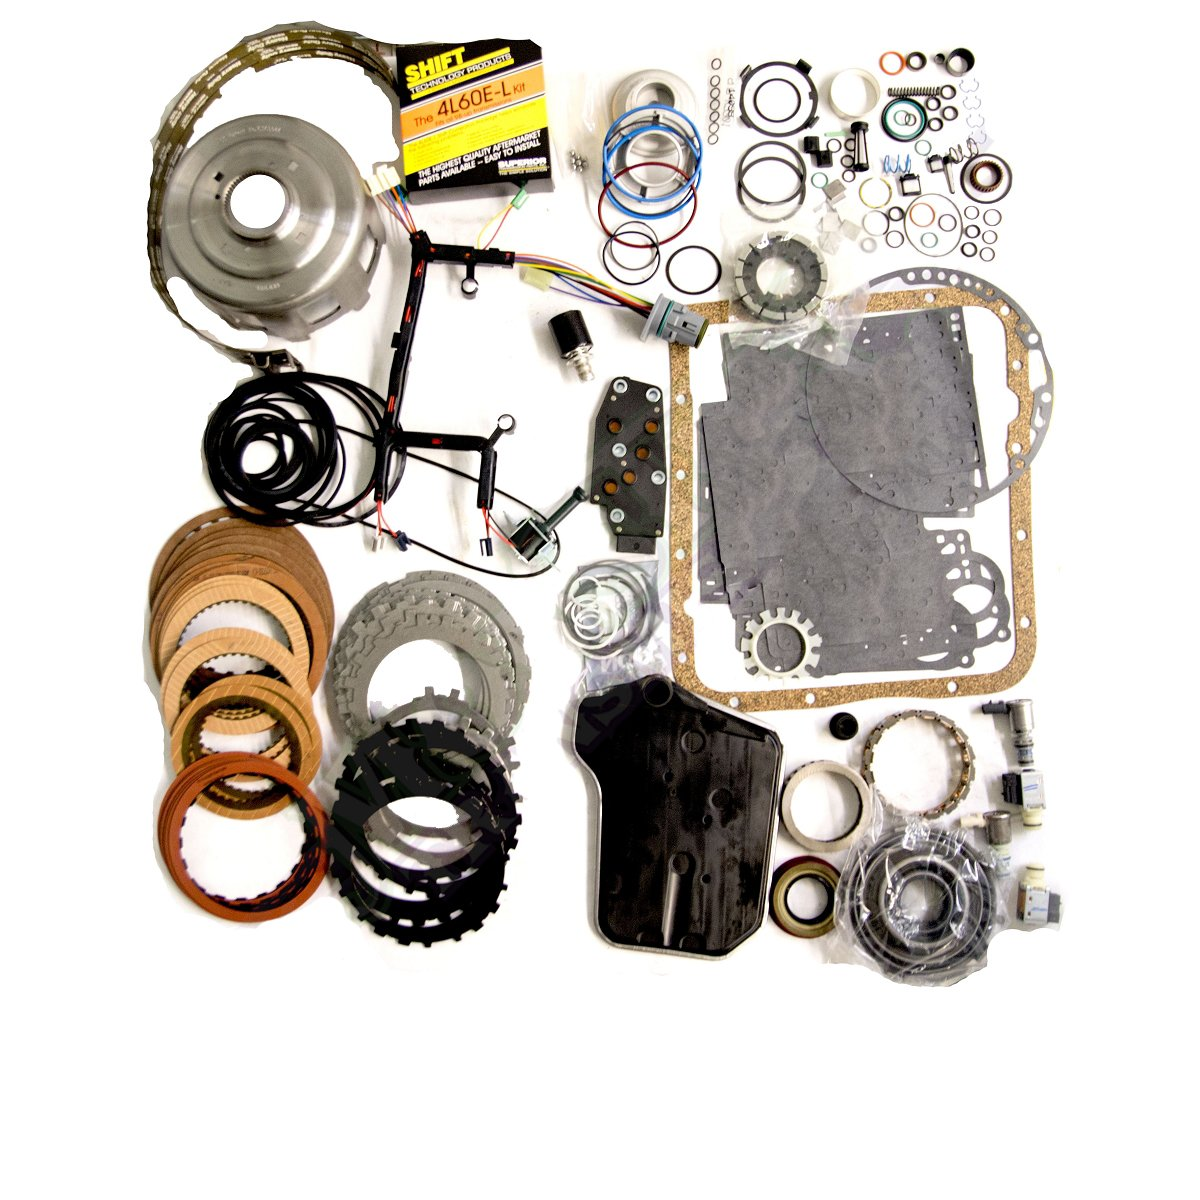 4L65E Transmission Rebuild Kit, Mega Monster-In-A-Box: 2003-06